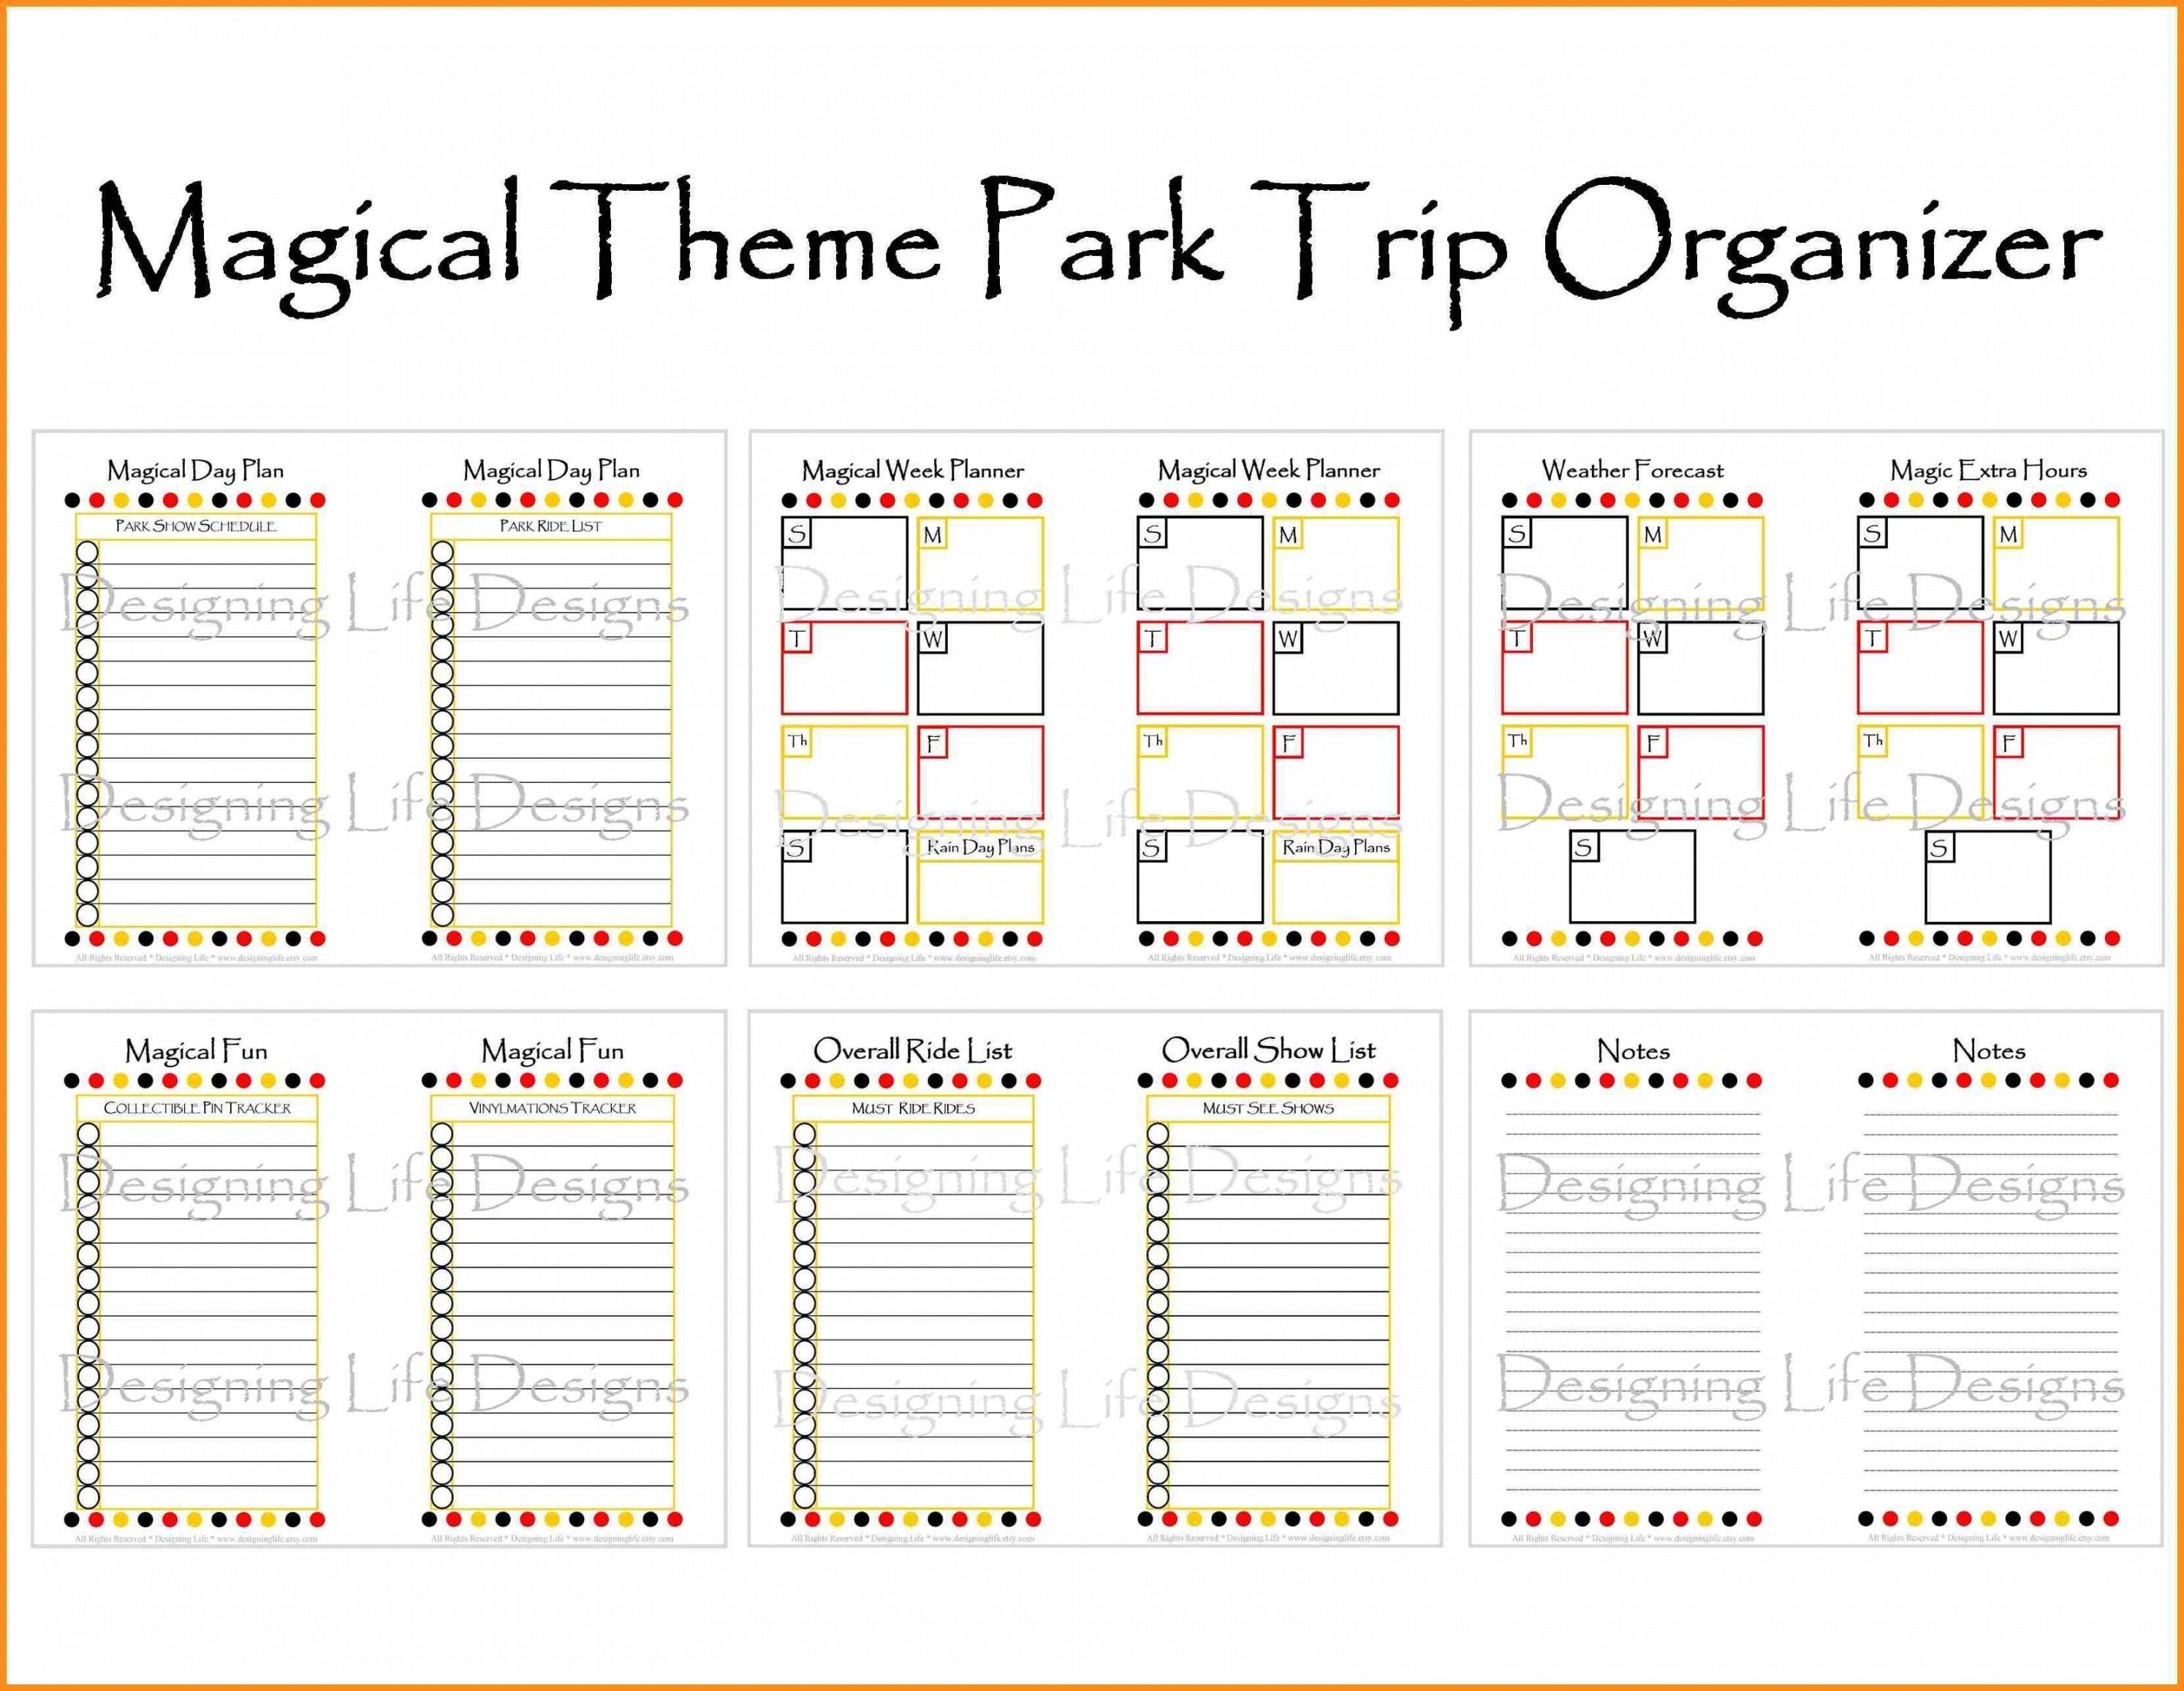 Image Result For Disney World Itinerary Template Disney Fun-Free Disney World Itinerary Template